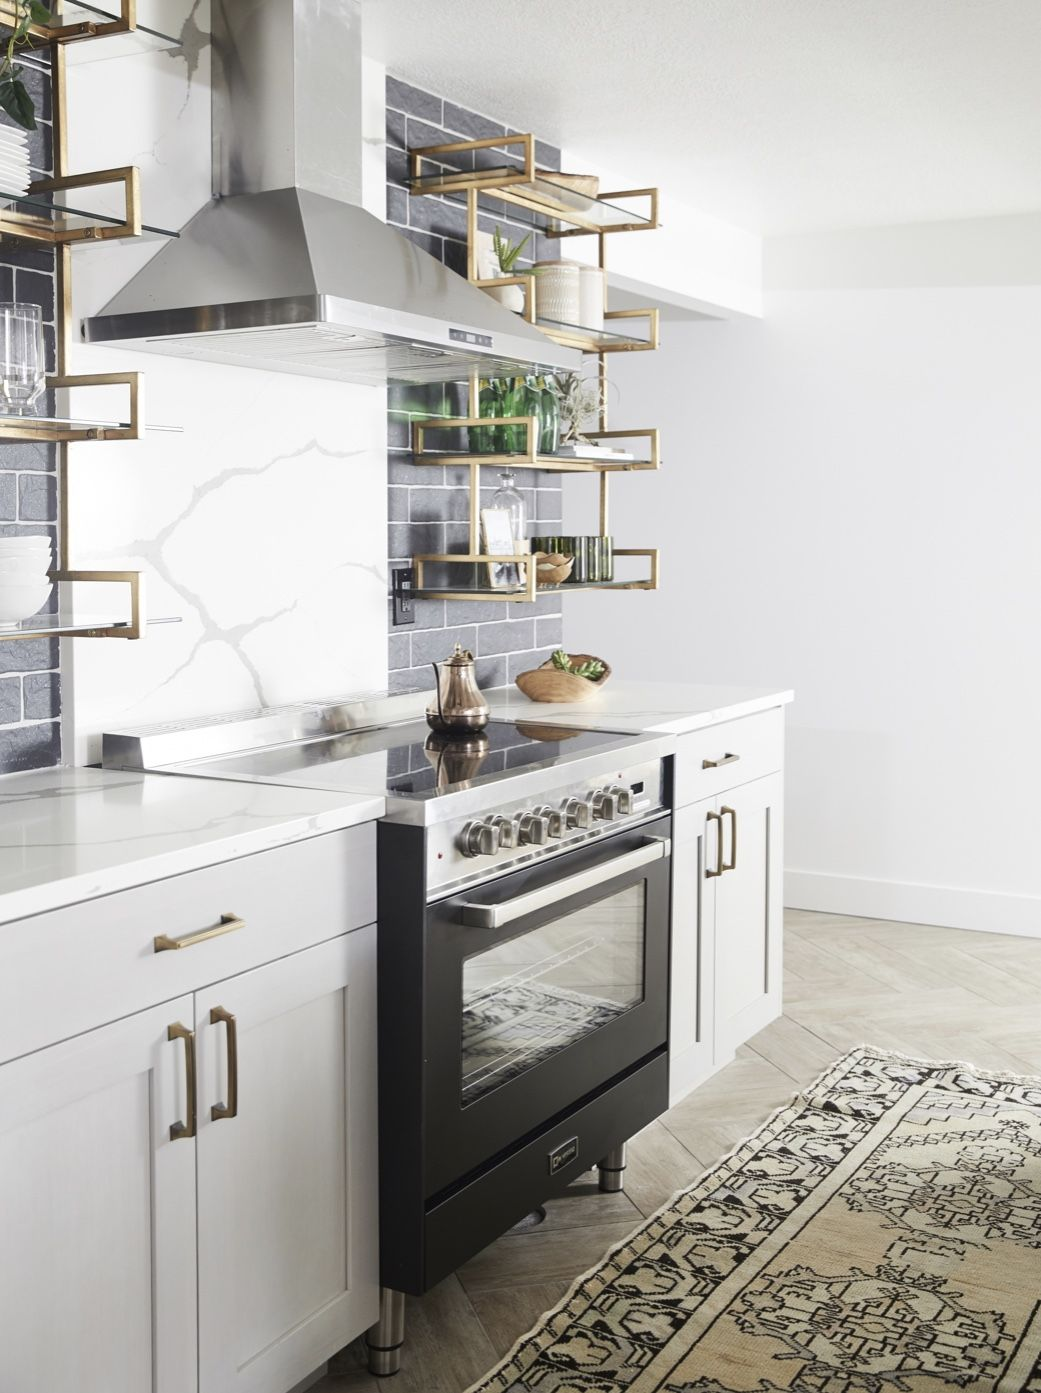 Pin By Lindsey Cherrington On H O M E In 2018 Pinterest Kitchen